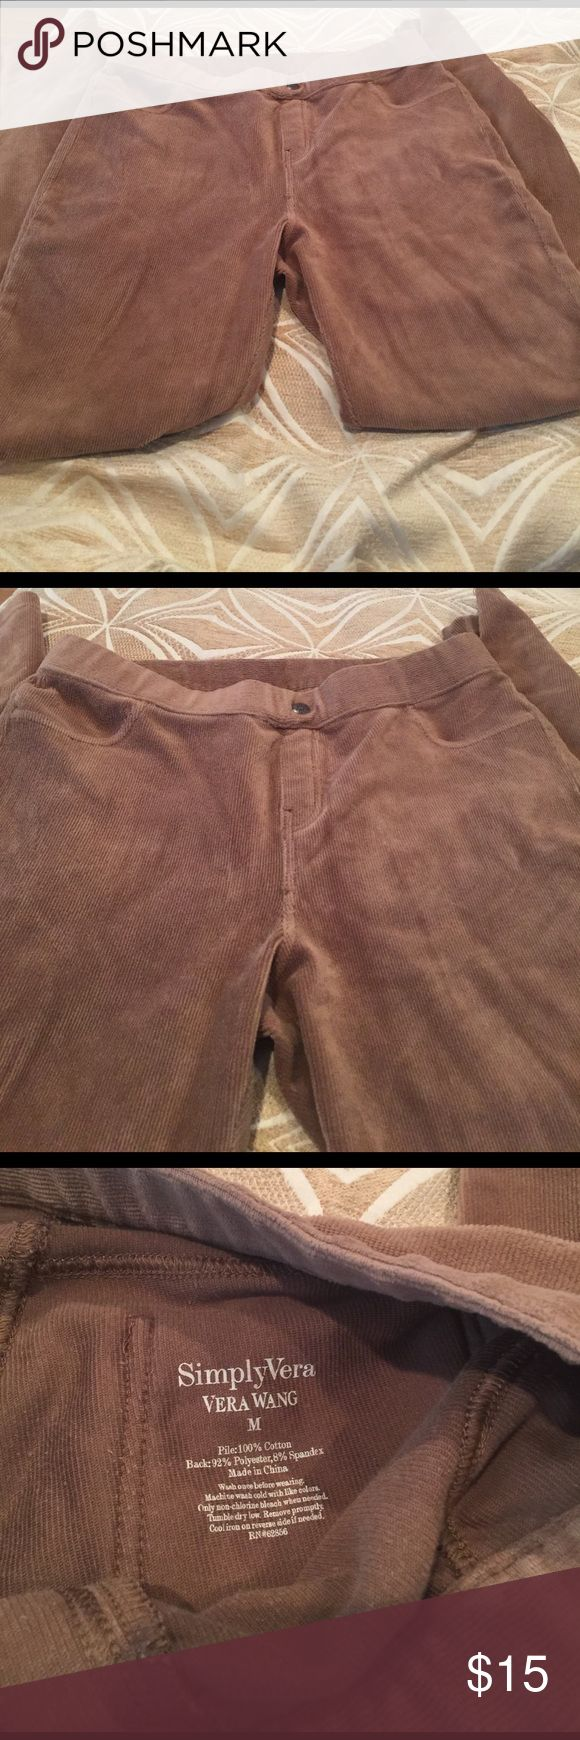 Vera Wang legging corduroy med 100% cotton Simply vera vera Wang corduroy leggings medium 100% cotton brown Simply Vera Vera Wang Pants Leggings